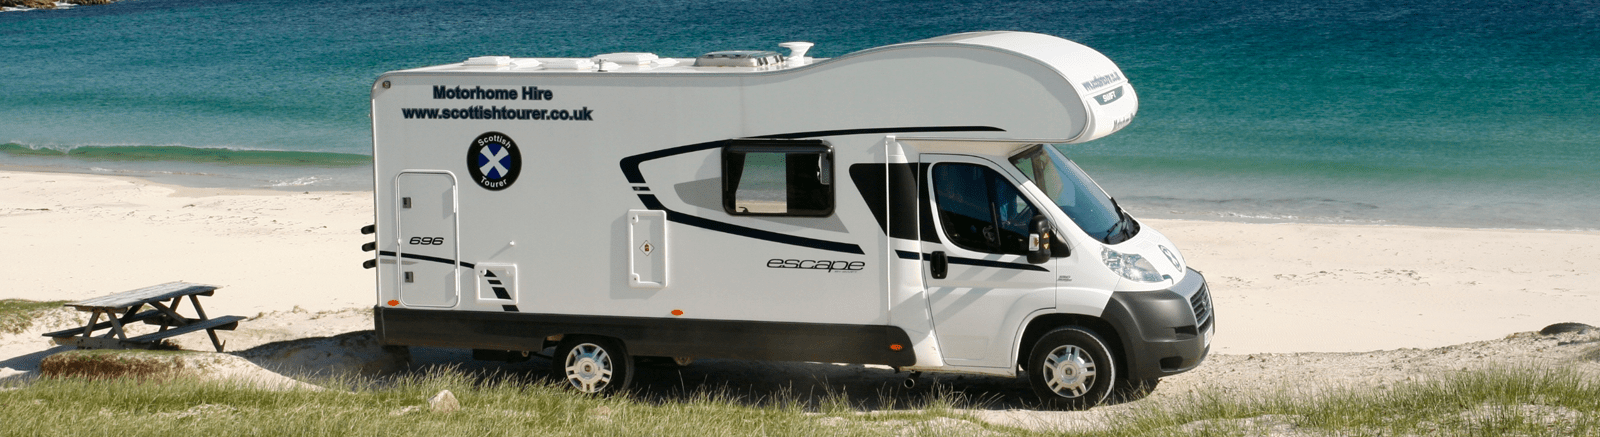 Motorhome Beach Tour - Scottish Tourer